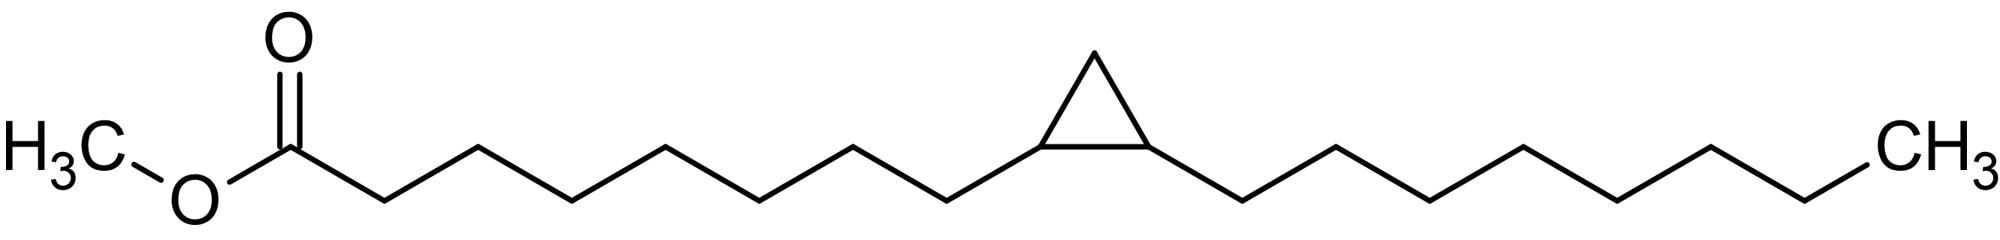 Chemical Structure - Methyl cis-9,10-methylene-octadecanoate (Methyl dihydrosterculate), Unsaturated fatty acid (ab144076)